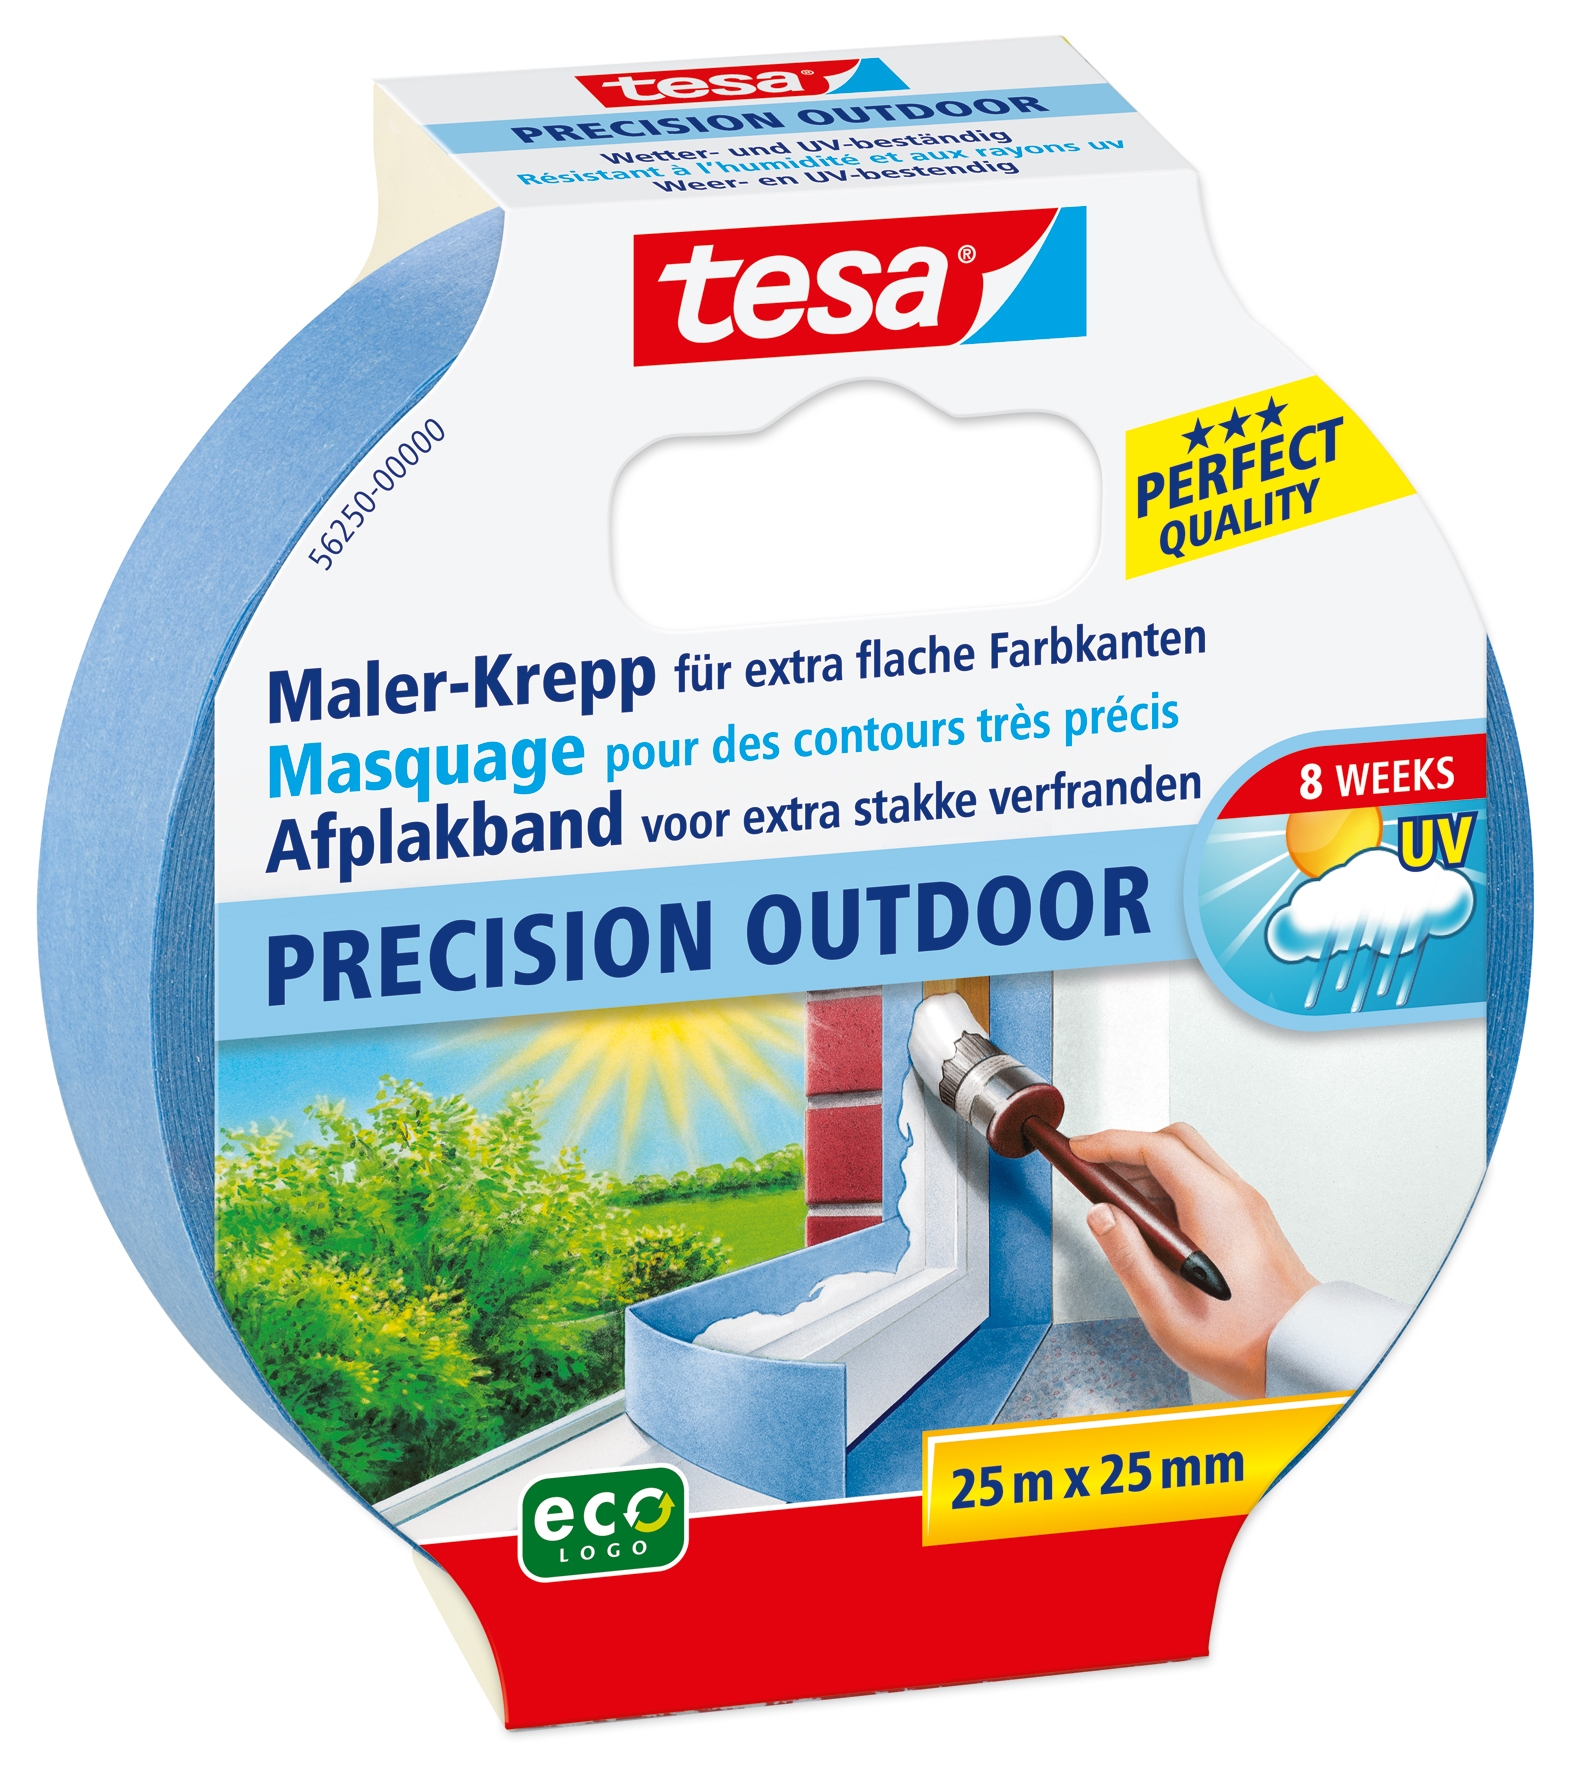 GP: 0,13 EUR/m 6 x tesa Maler-Krepp Precision Outdoor 25 m x 25 mm